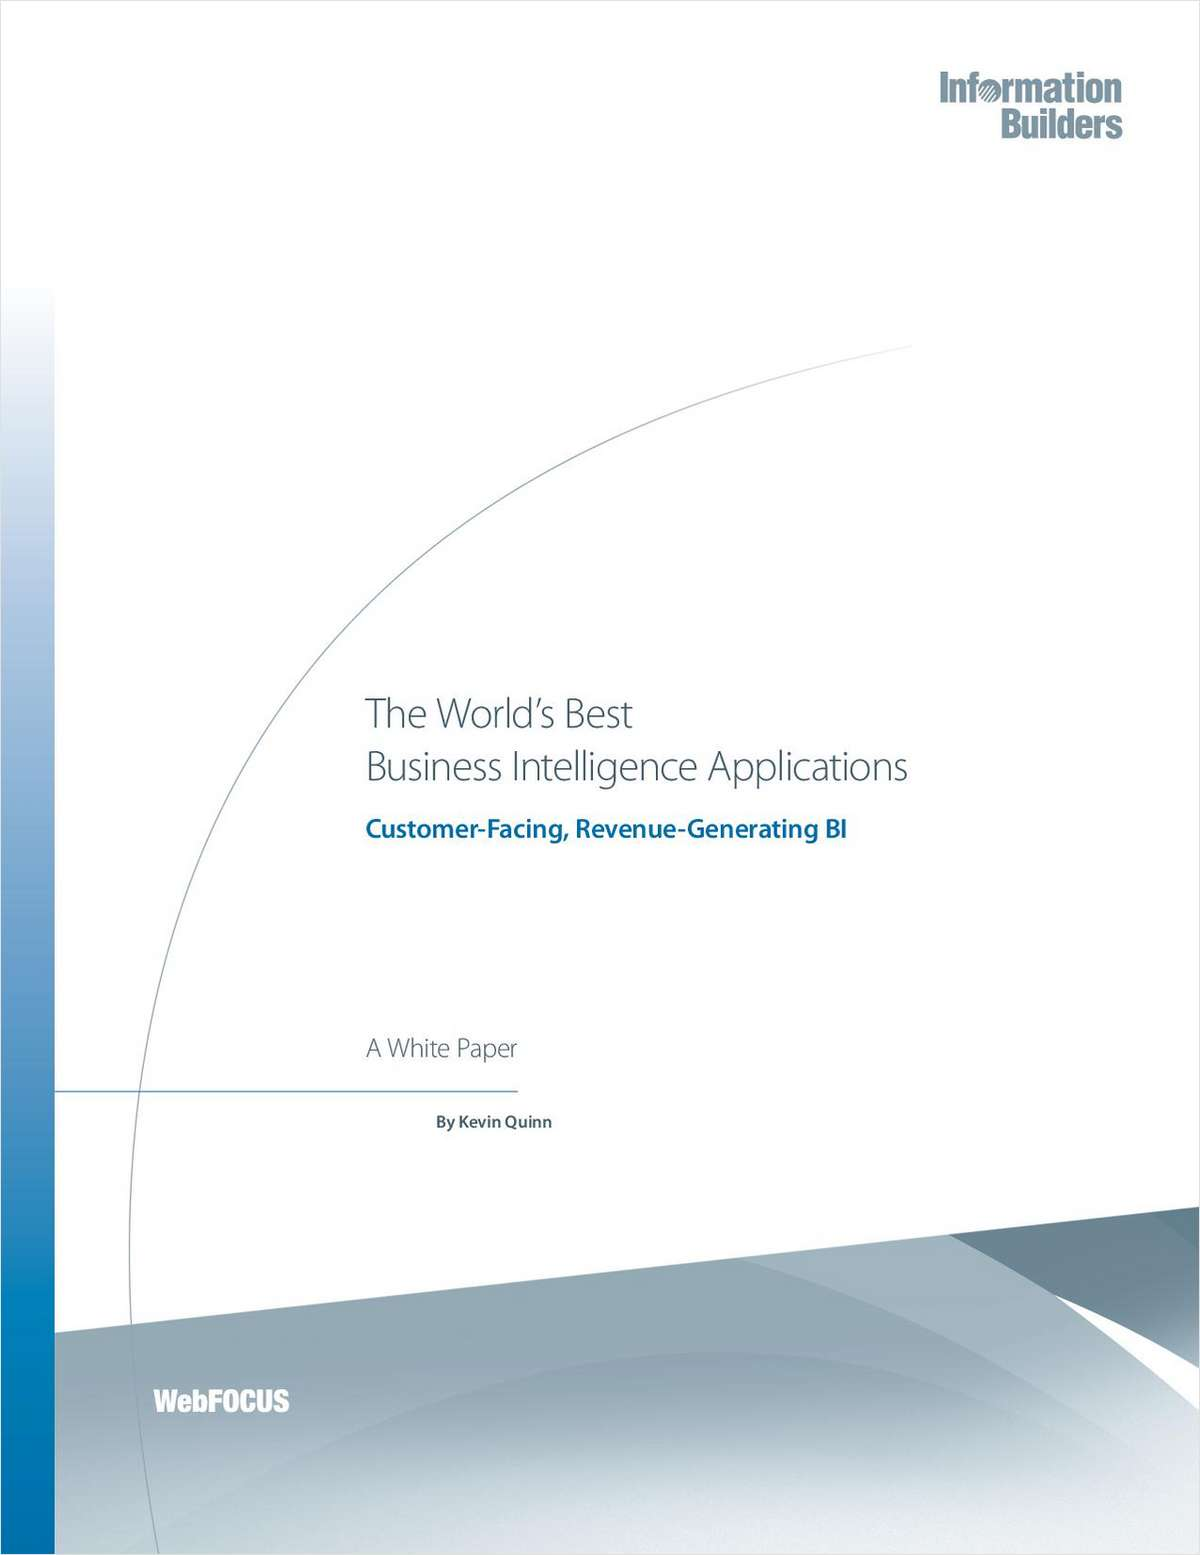 The World's Best Business Intelligence Applications: Customer-Facing, Revenue-Generating BI